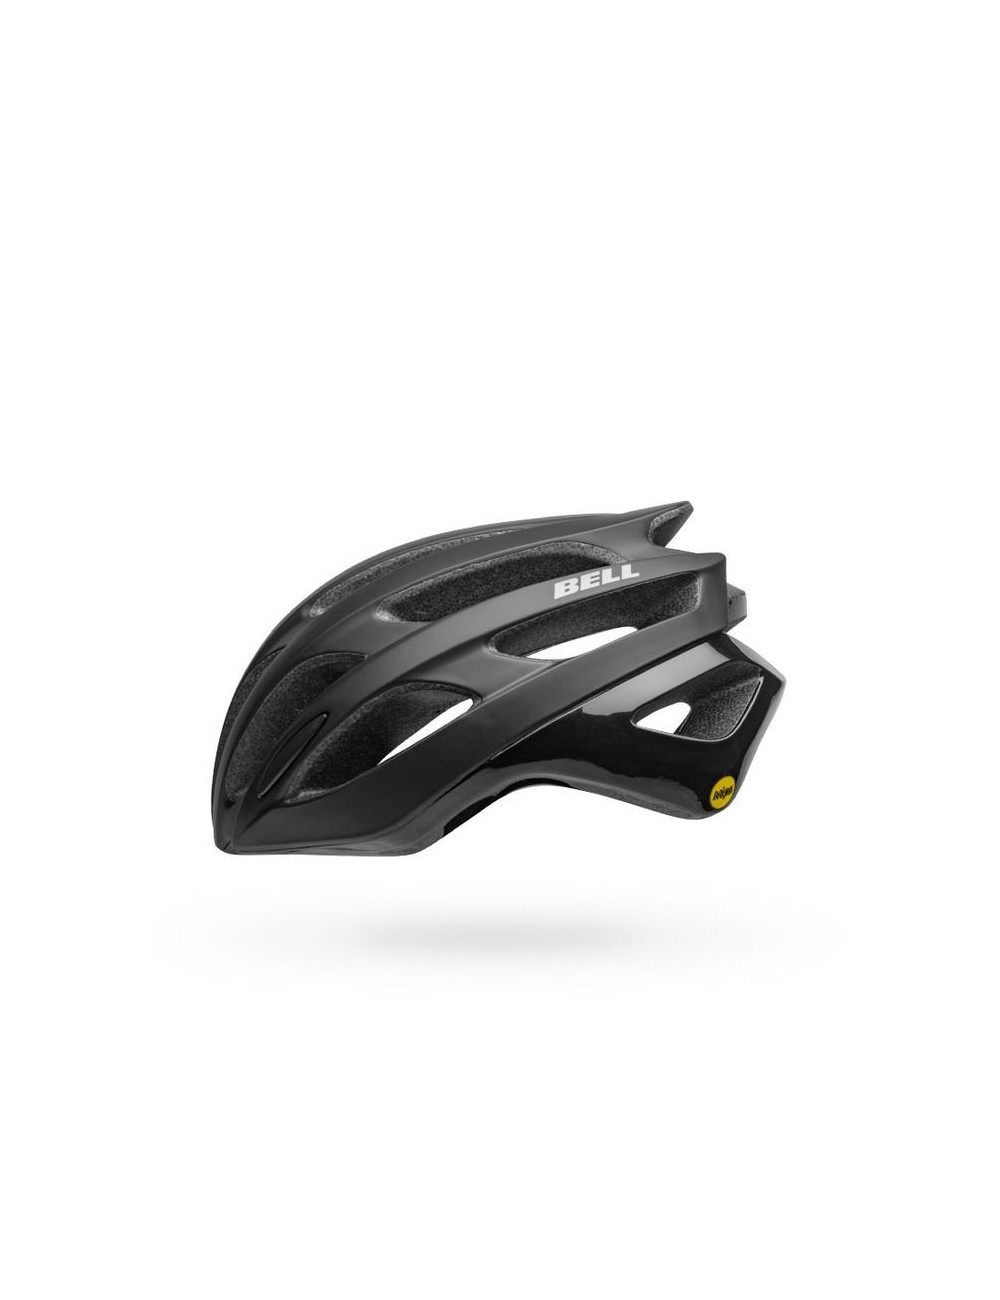 CAPACETE BELL FALCON MIPS